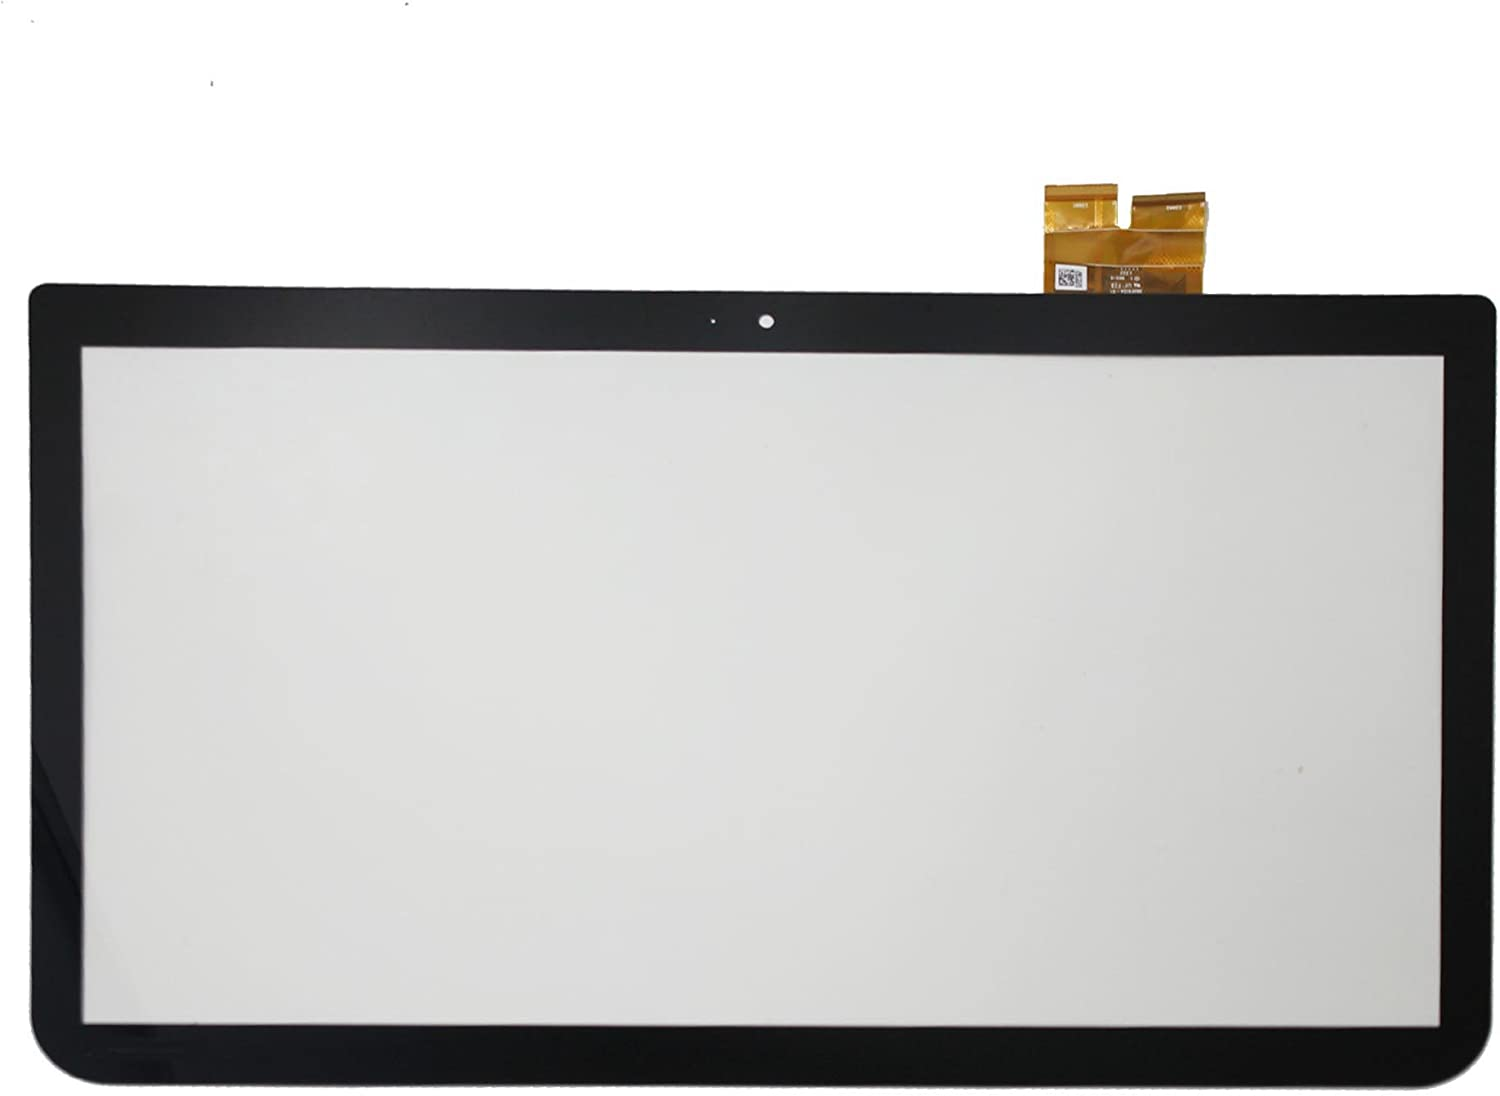 LCDOLED 15.6 inch Replacement Touch Screen Digitizer Front Glass Panel for Toshiba Satellite E55T-A5320 (No Bezel)